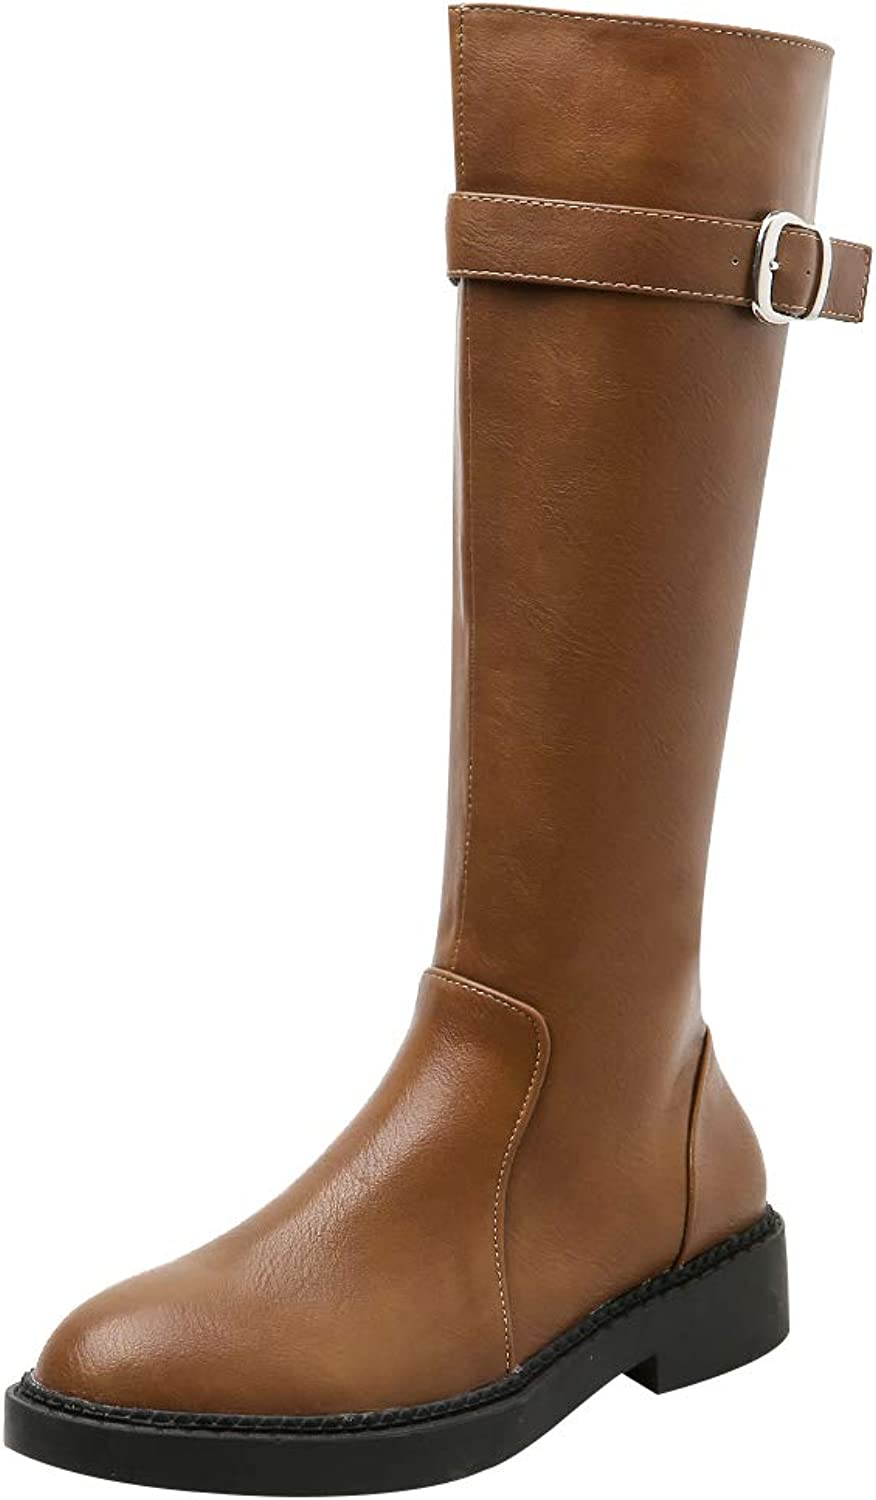 Jamron Women Western Trendy Horse Riding Boots Stylish Half Boots Water-Proof Faux Leather Zip Boots